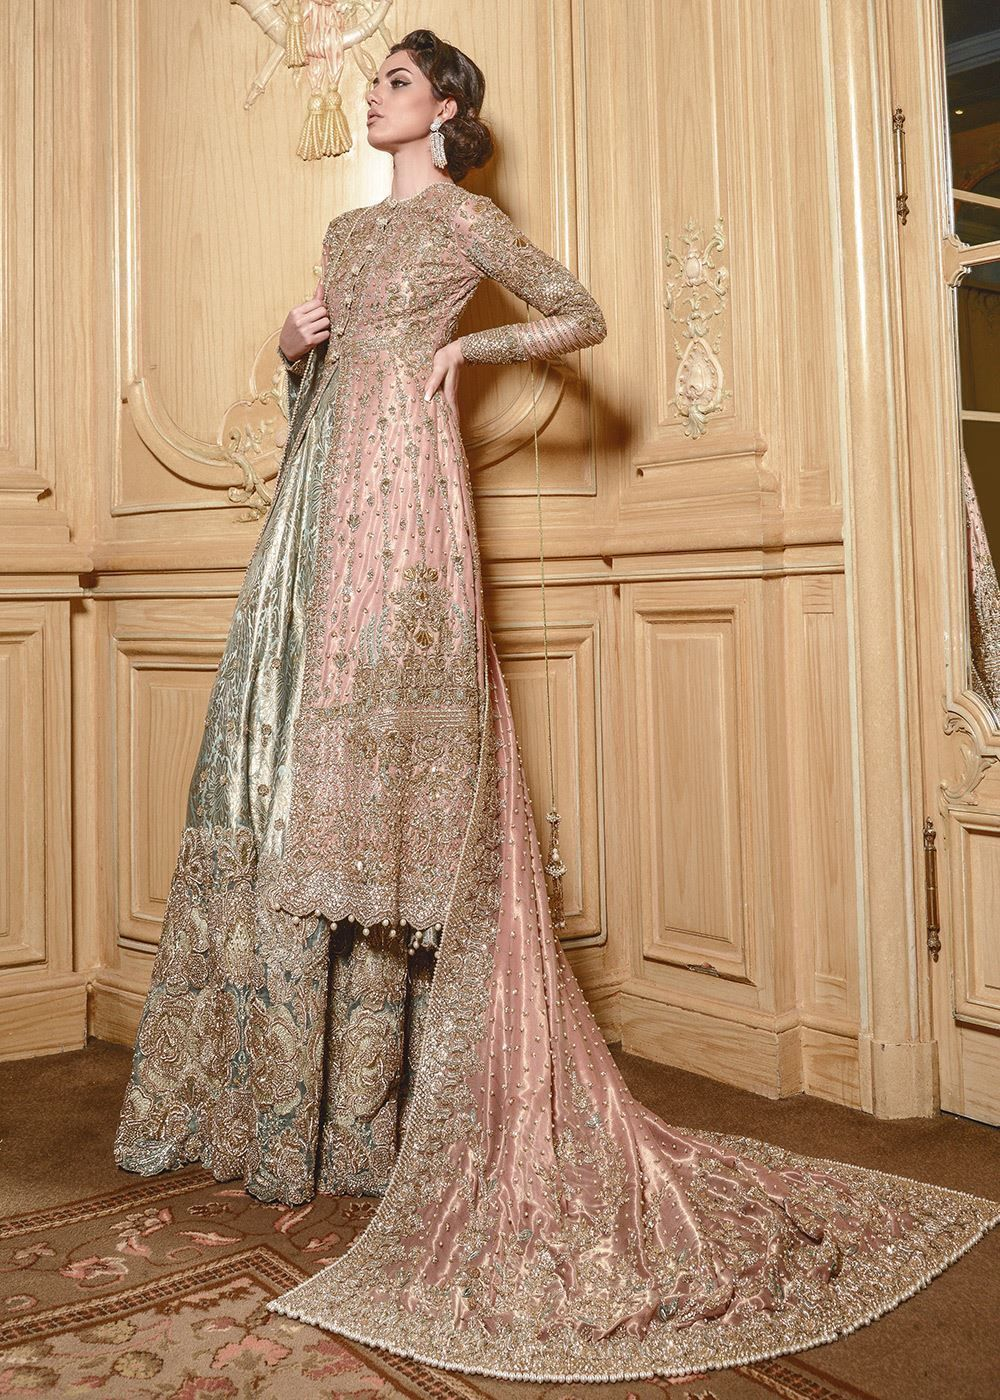 Bridalspk is an exclusive onestop destination for the brides to